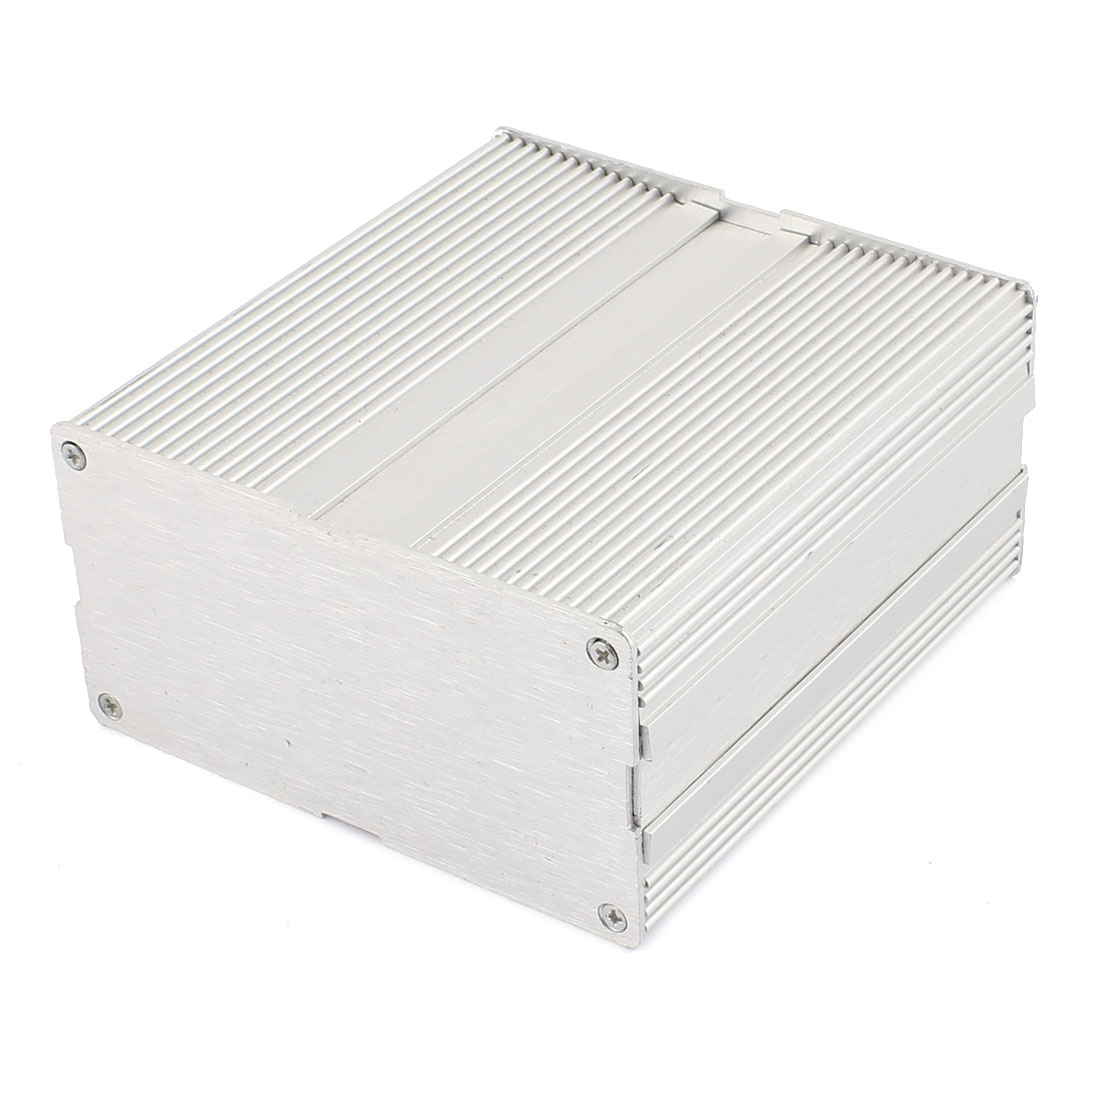 124 x 115 x 61mm Multi-purpose Electronic Extruded Aluminum Enclosure Silver Tone